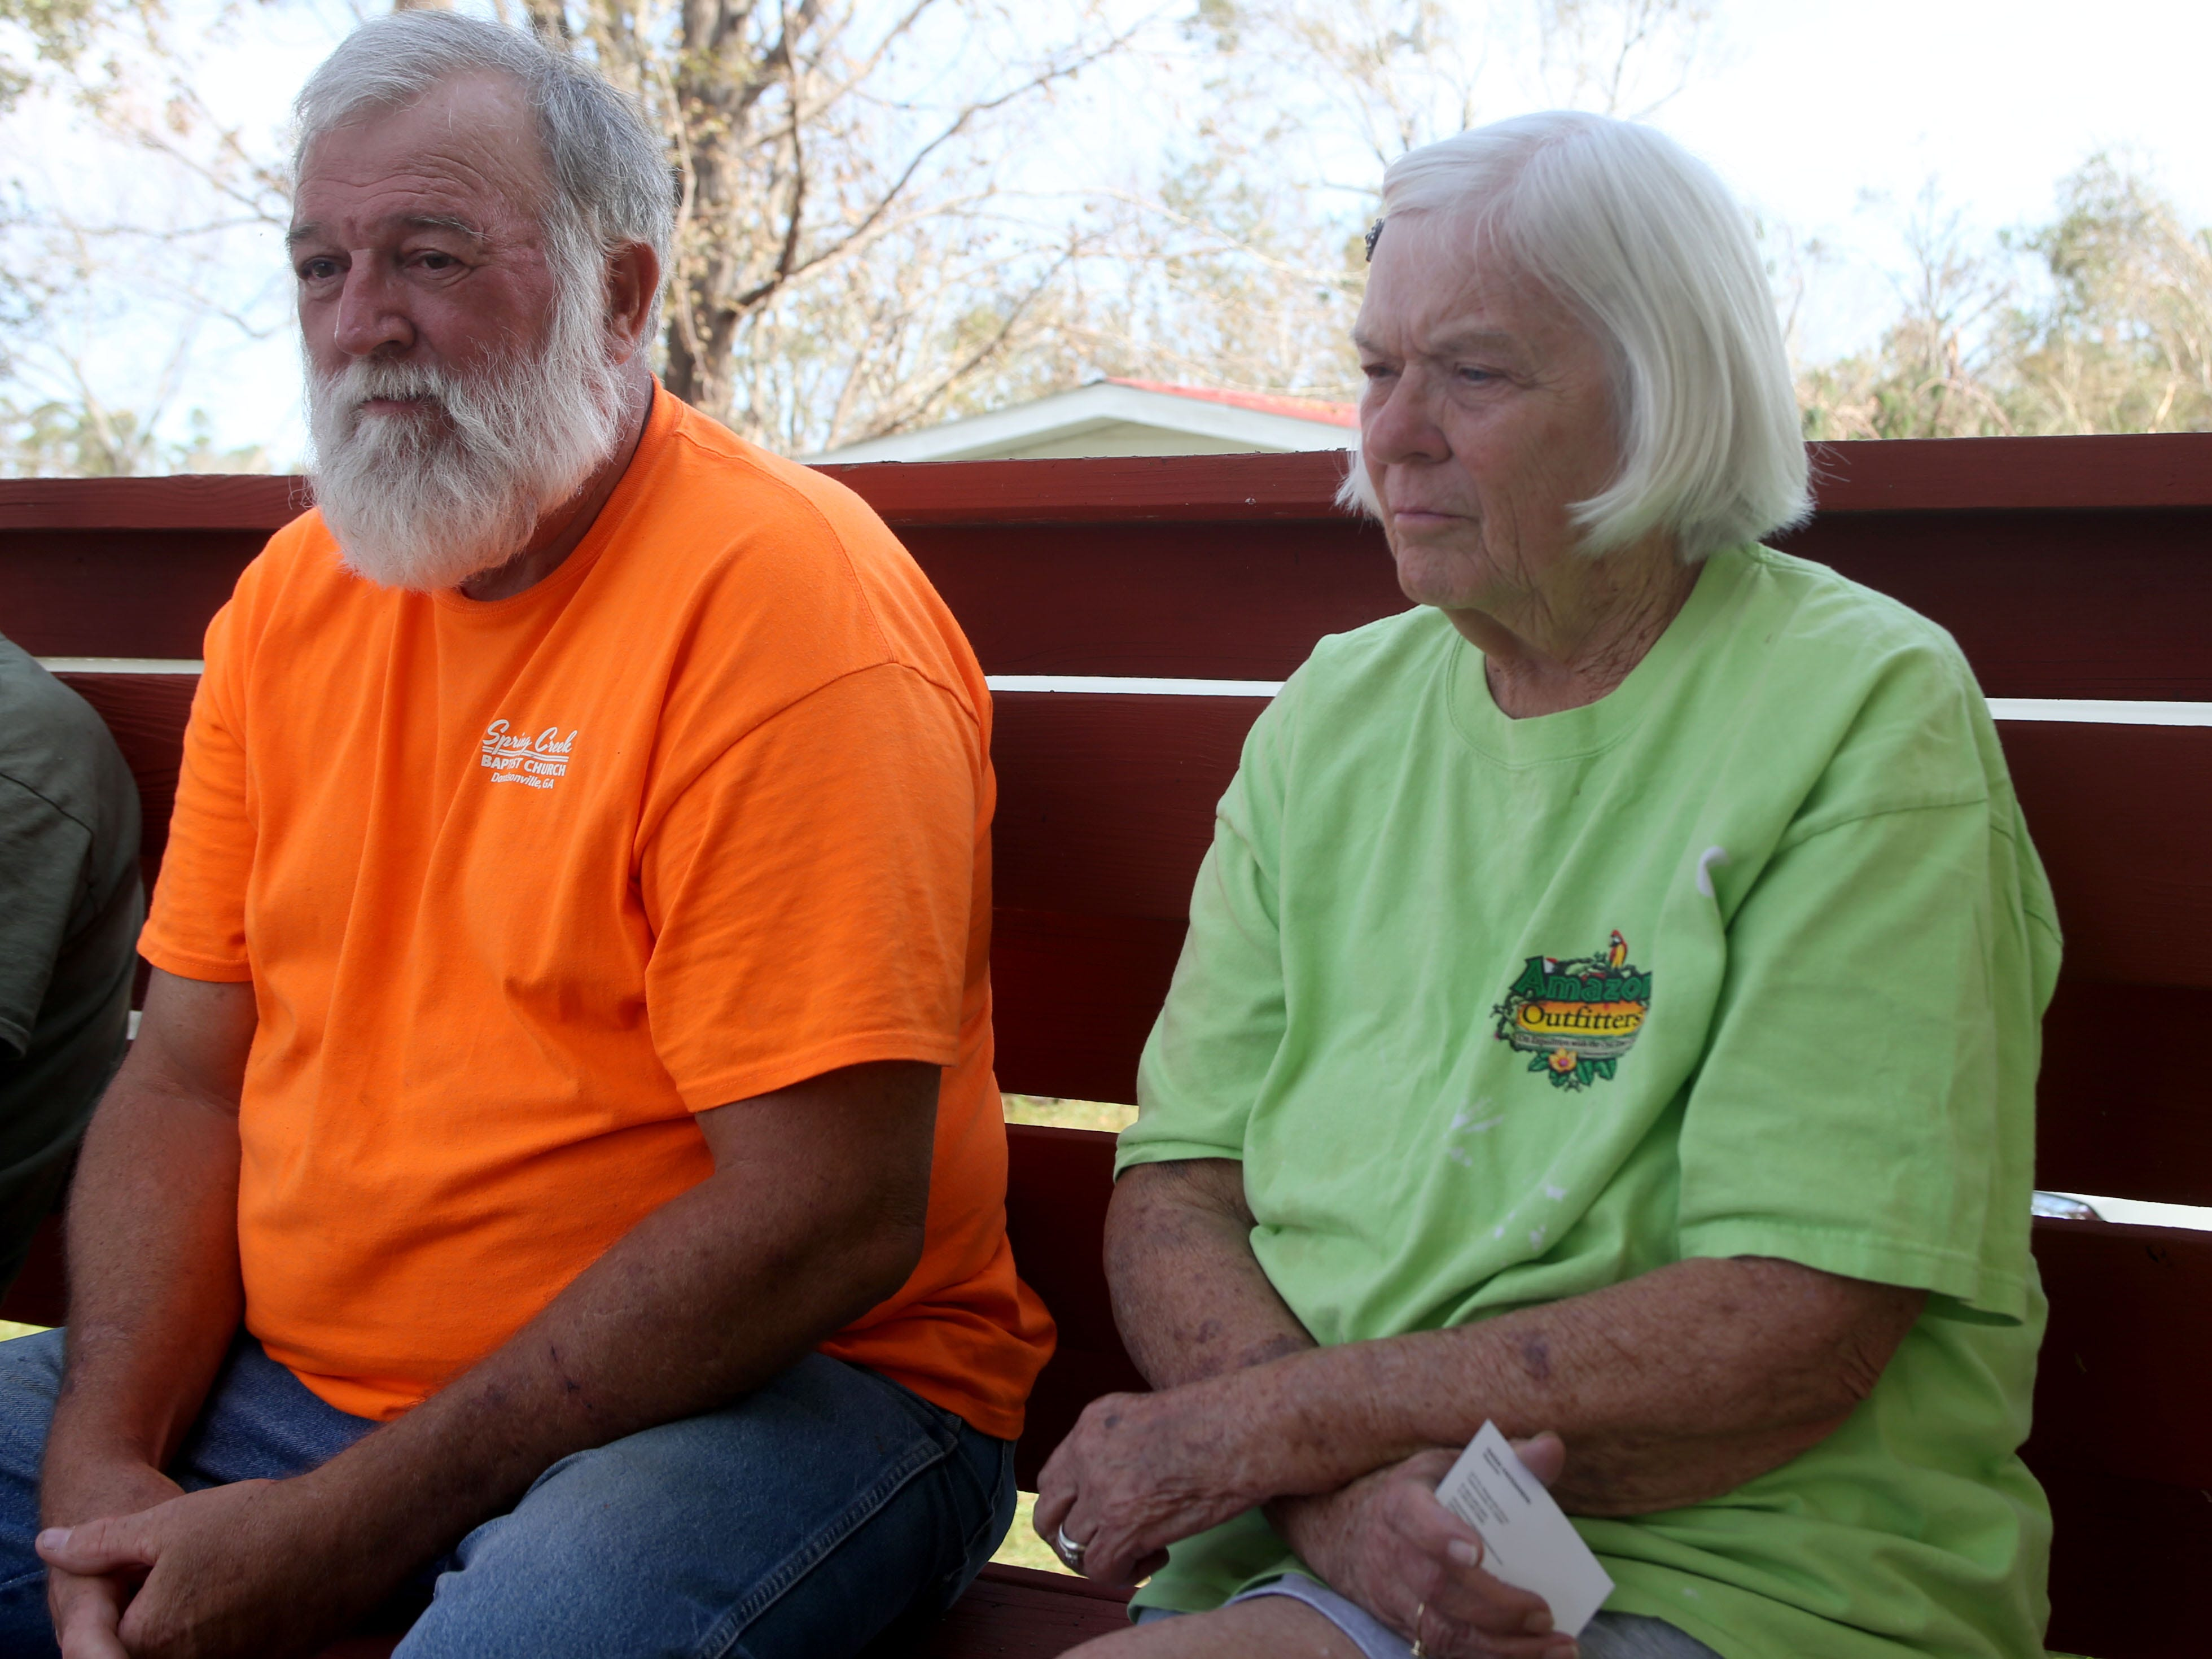 Eugene Radney, grandfather and Elizabeth Radney, grandmother of Sarah Radney, an 11 year old girl who died during Hurricane Michael in Donalsonville, Ga., as Eugene speaks about what took place during the hurricane on Thursday, Oct. 18, 2018.